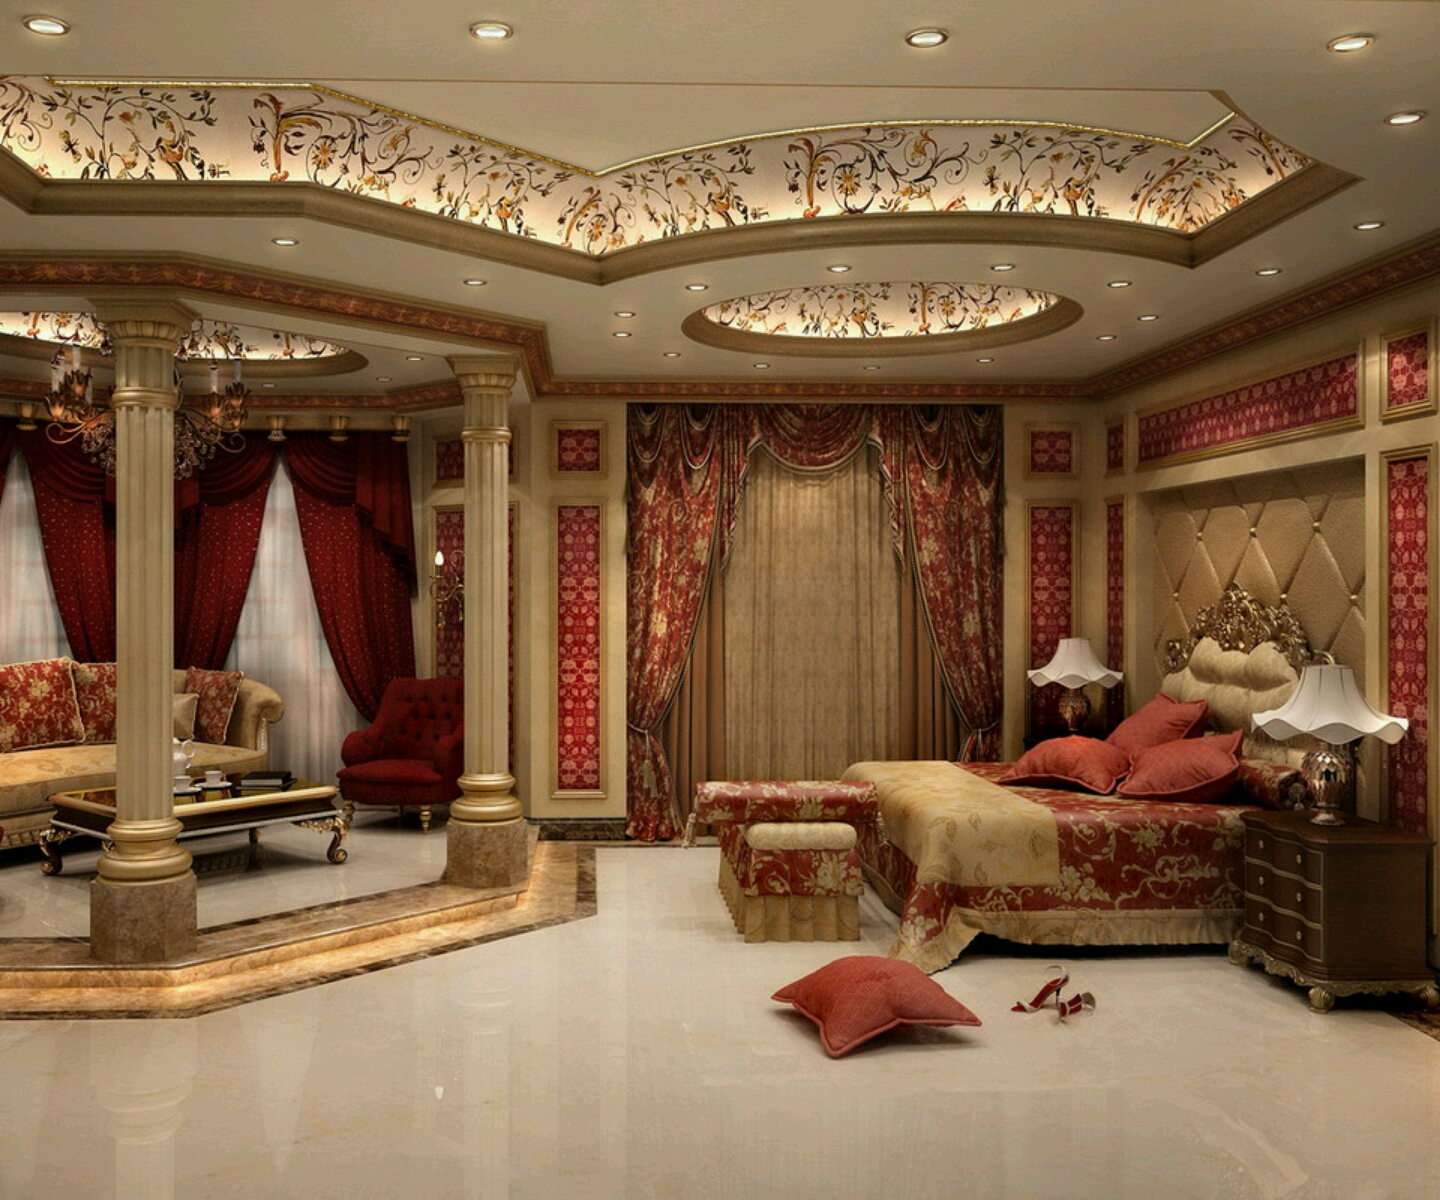 new home bedroom designs 2. Modern bedrooms designs ceiling ideas  New home latest December 2012